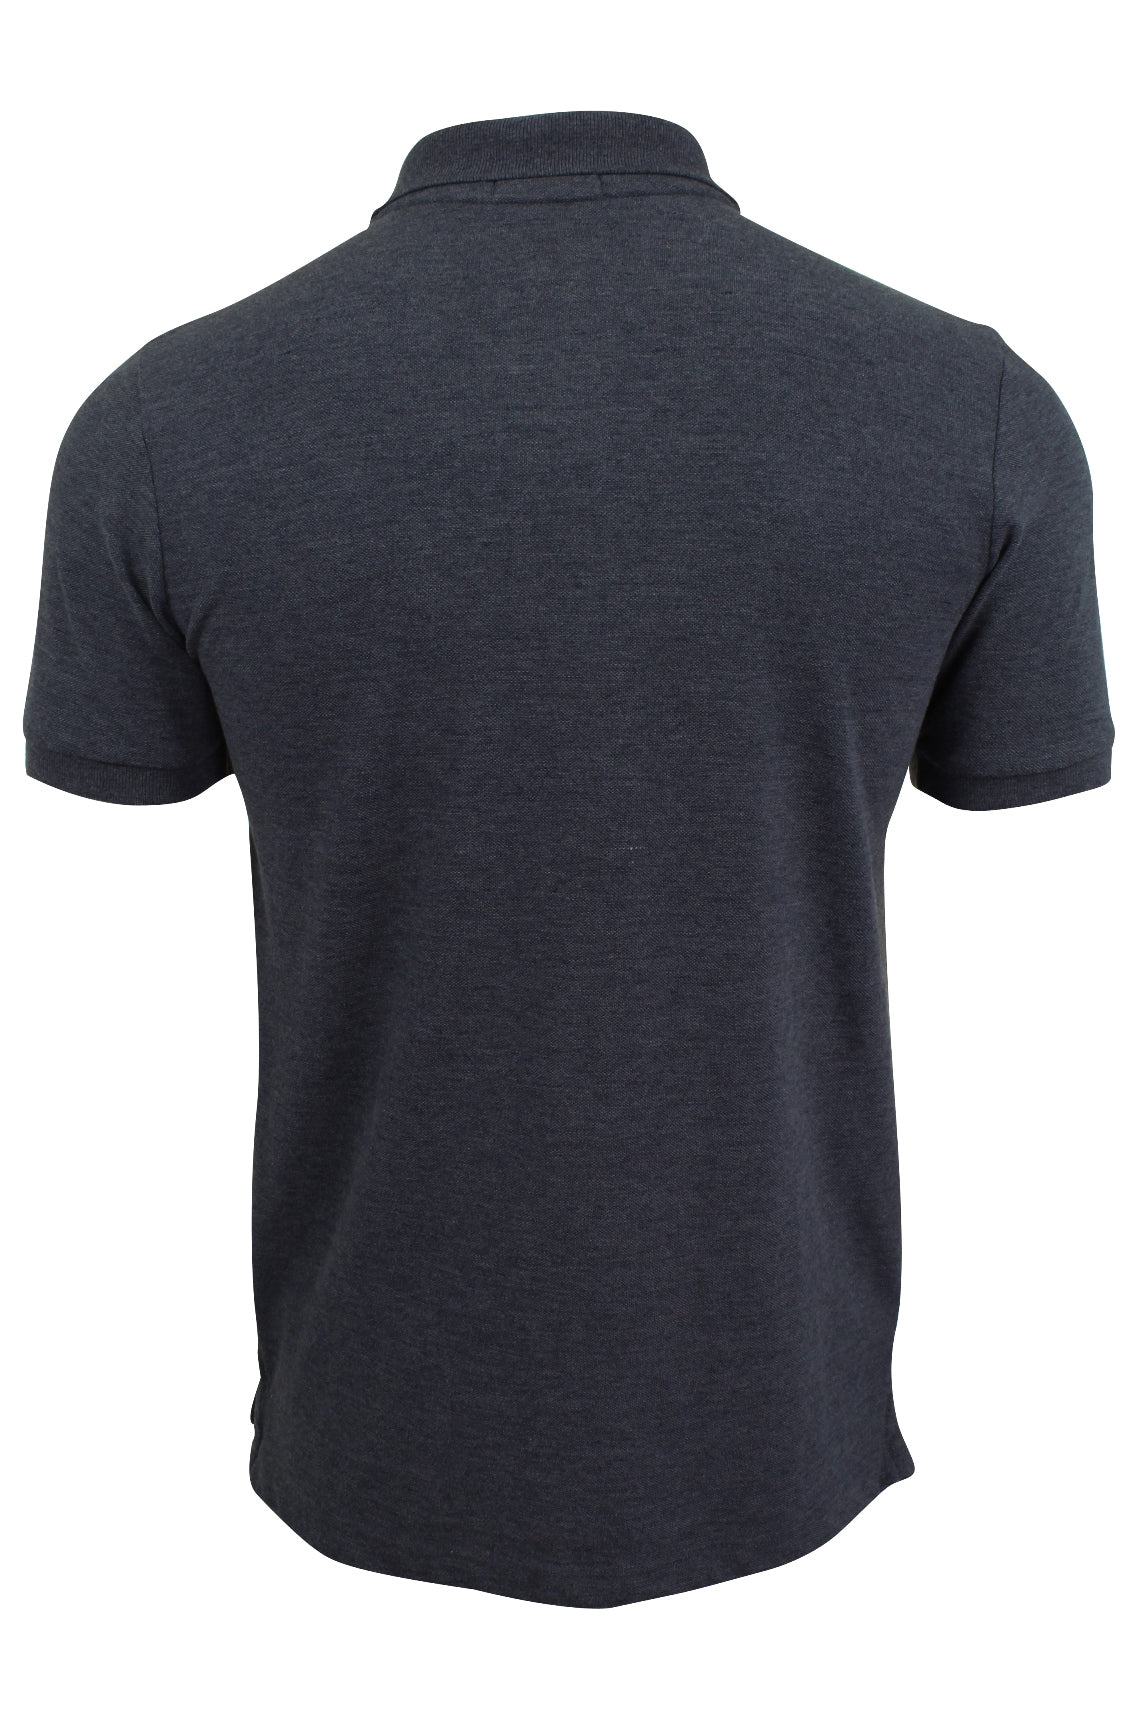 Mens Polo T-Shirt by Tokyo Laundry 'Rochester' Short Sleeved-3